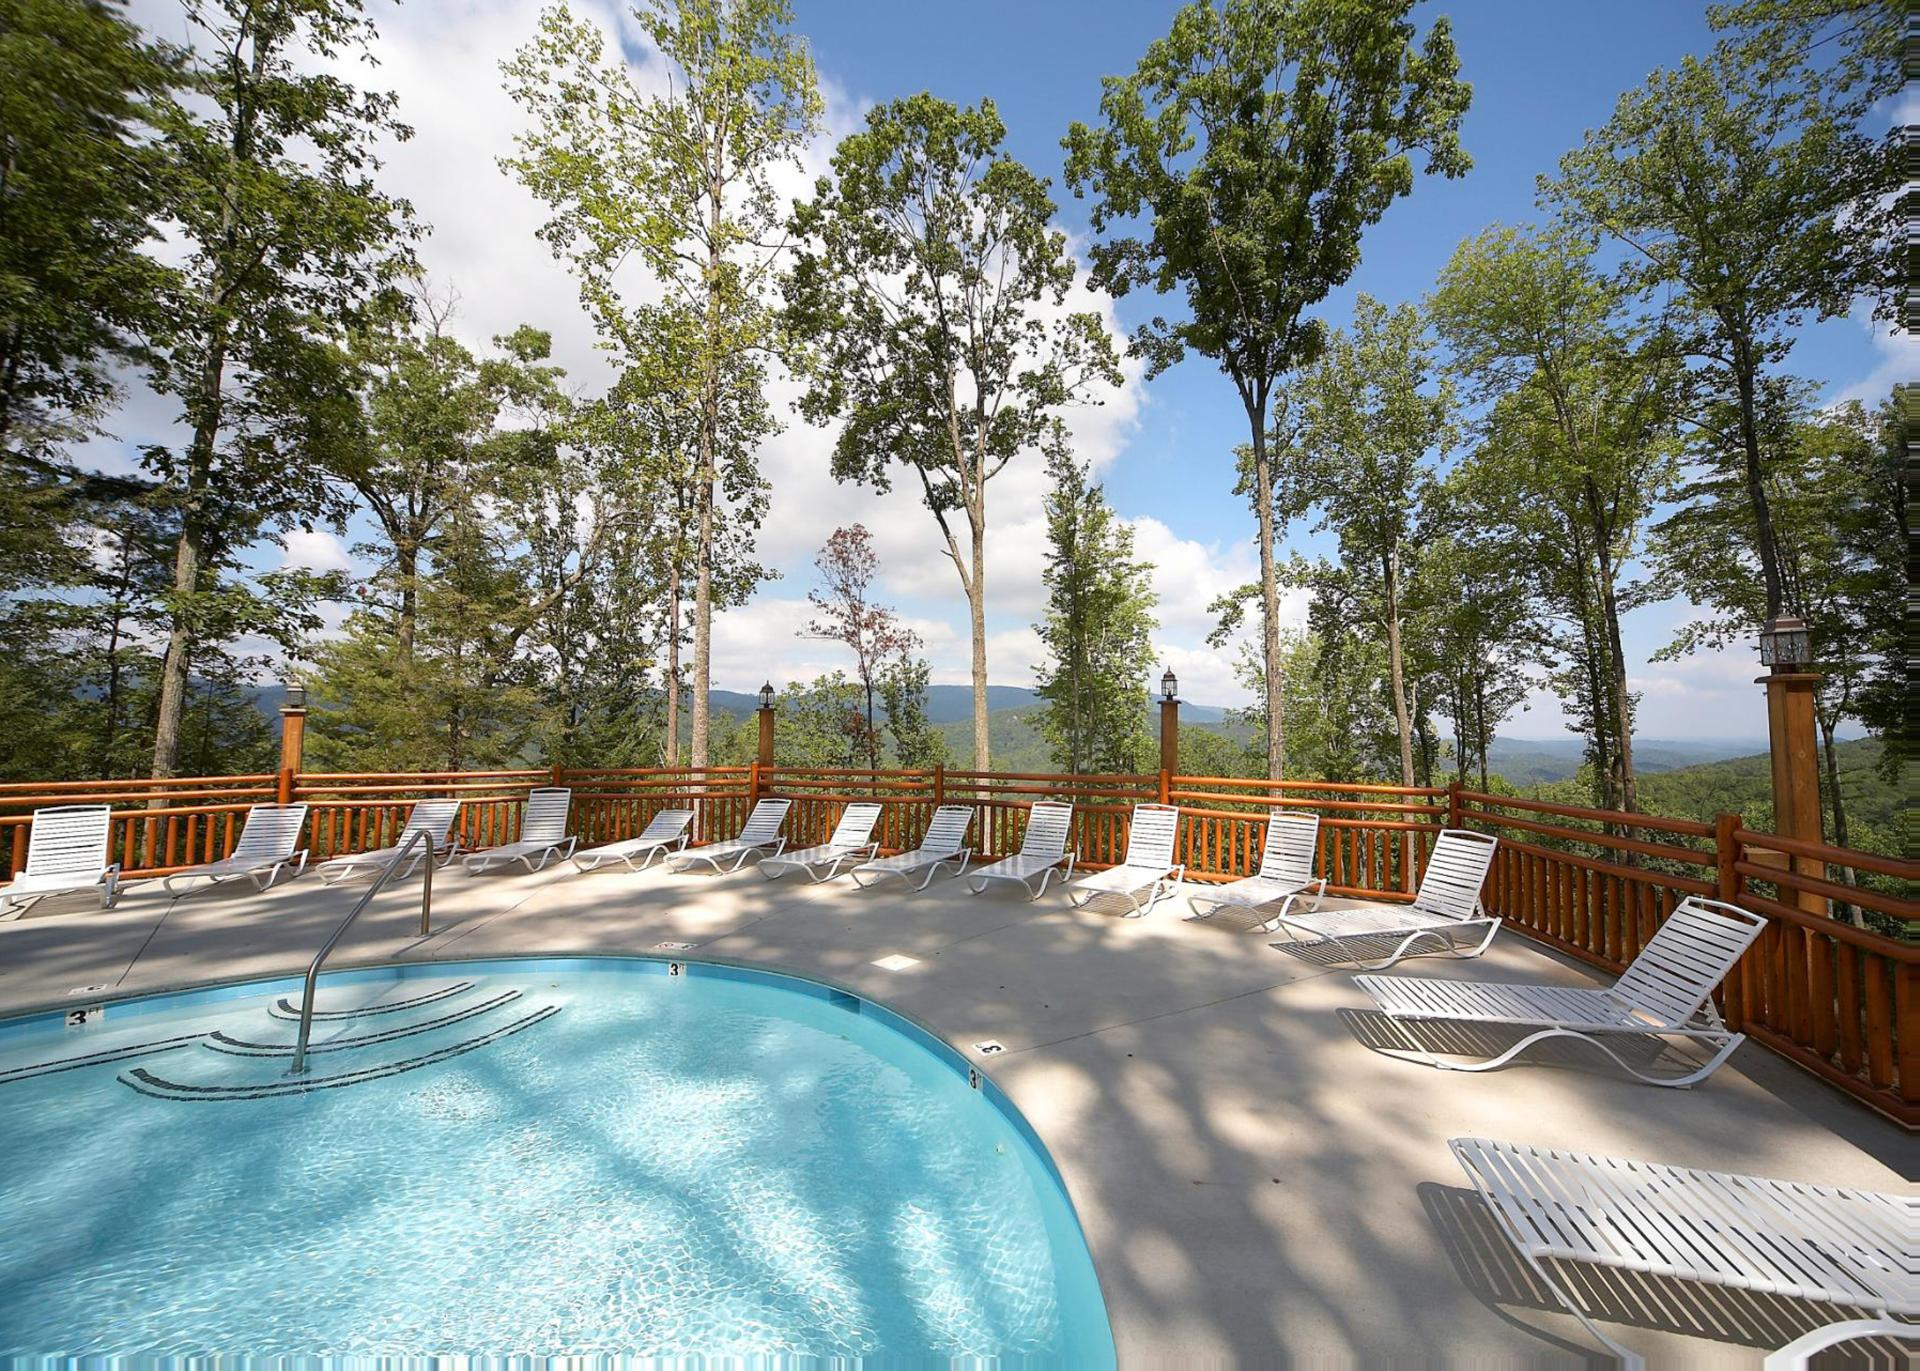 Enjoy the community pool with WIFI and amazing mountain views